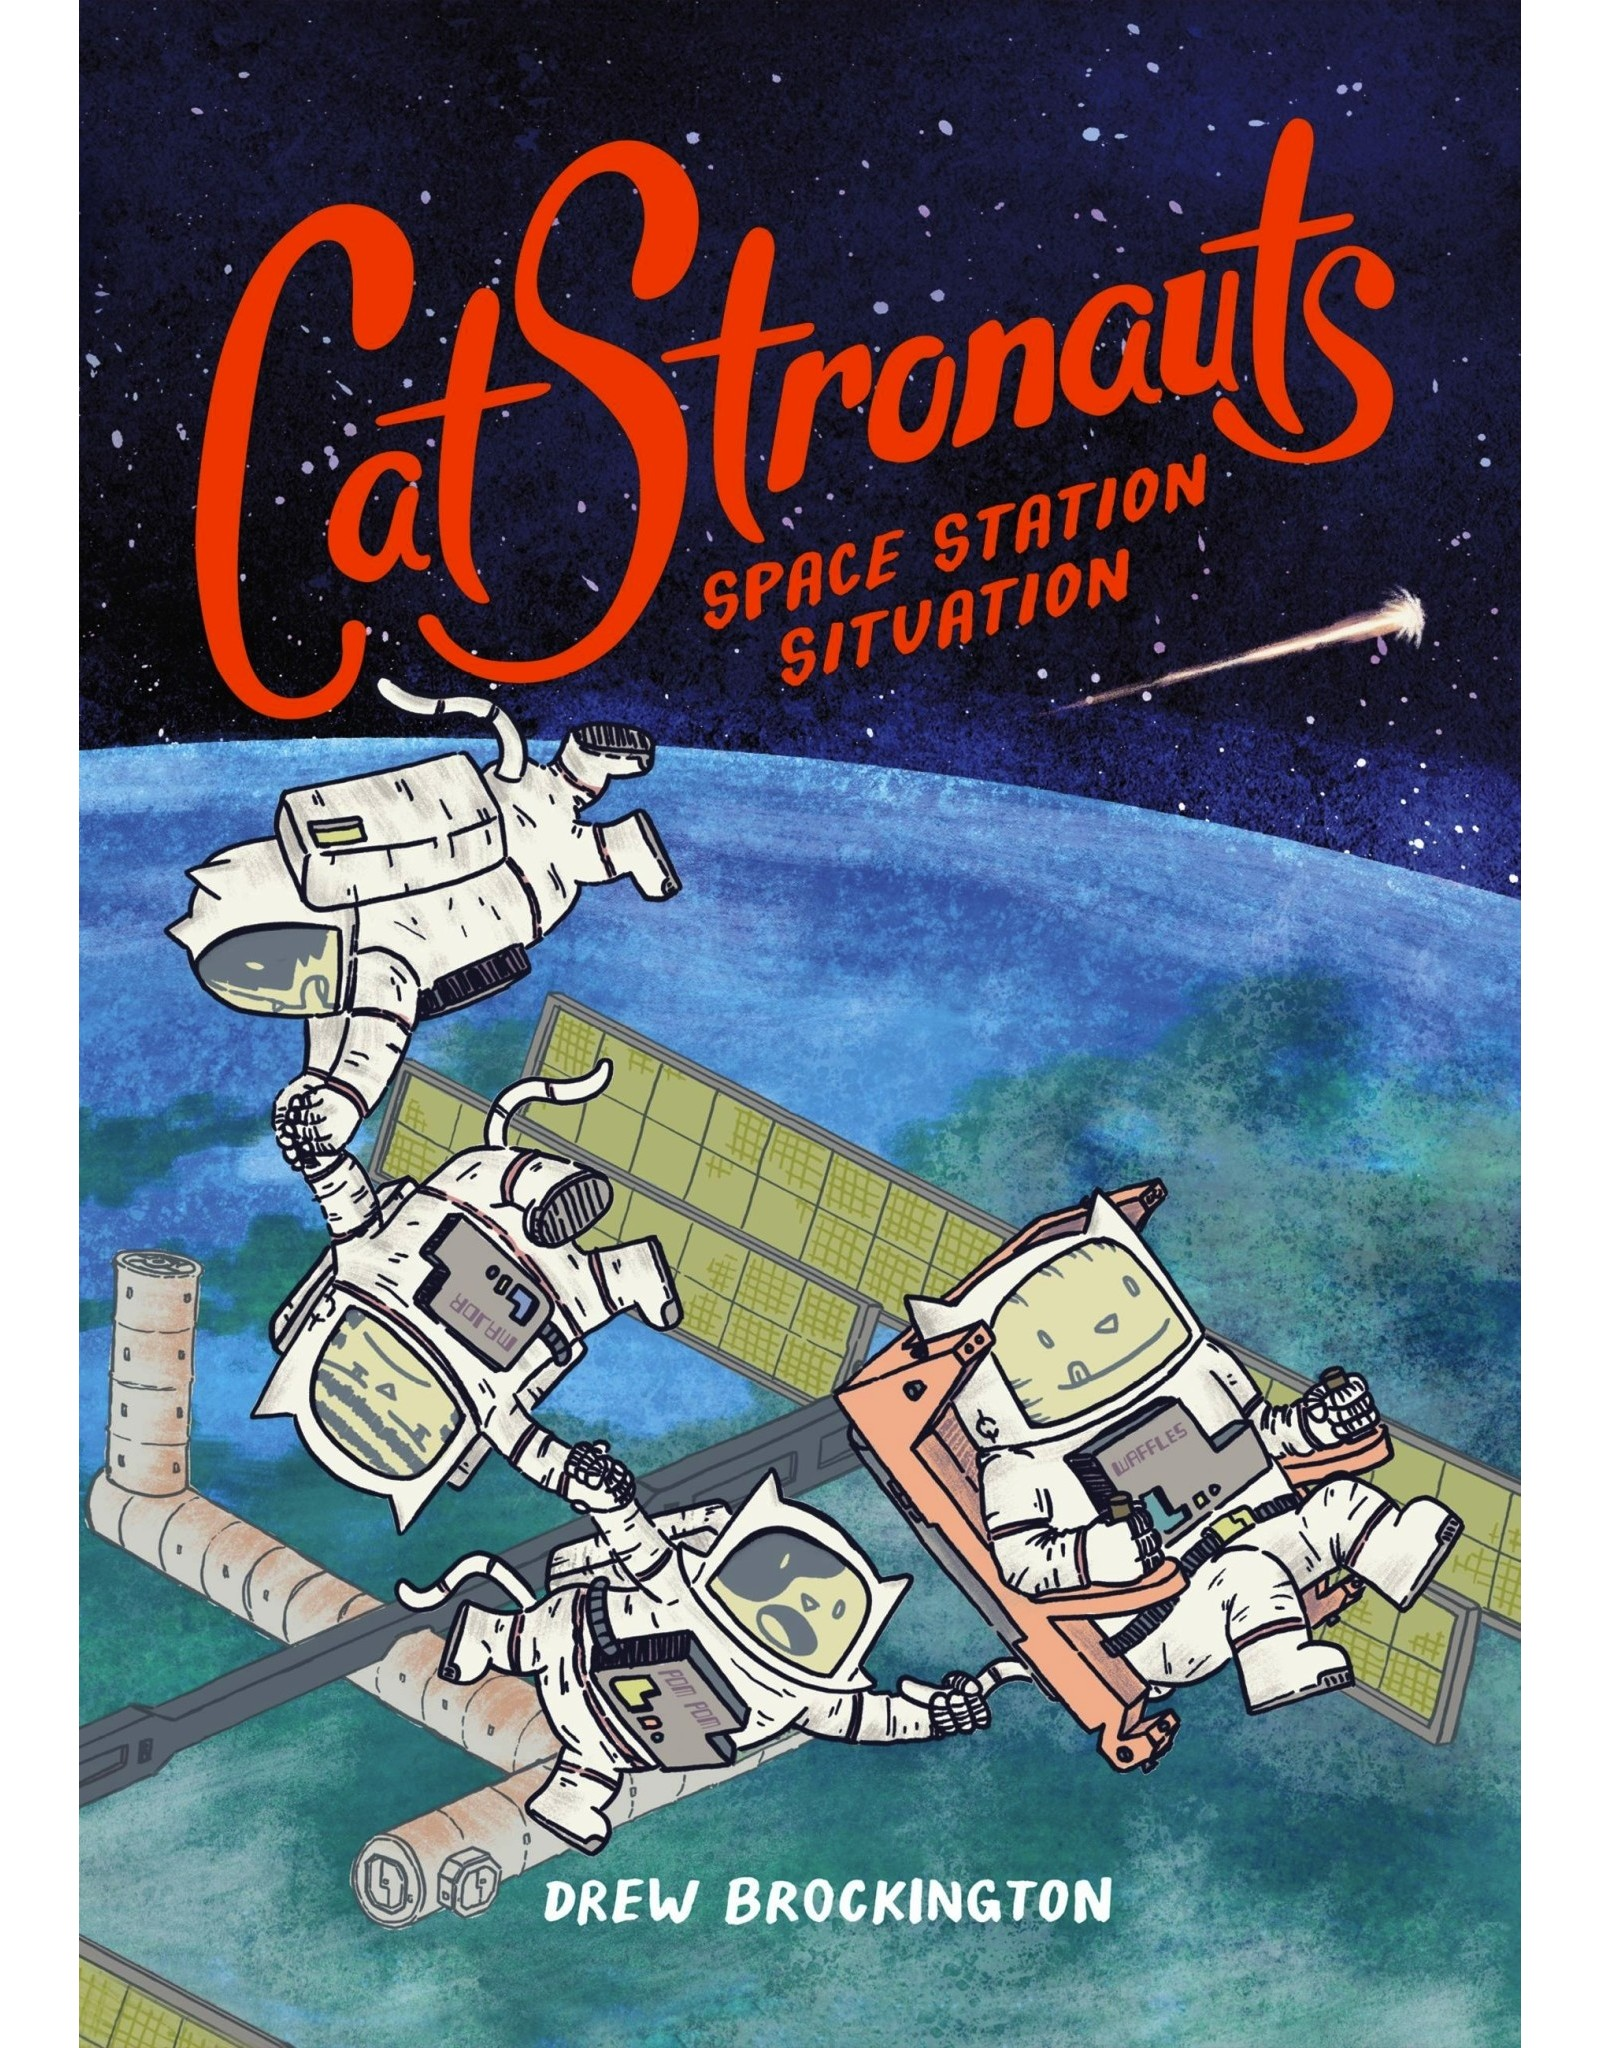 Hachette CatStronauts: Space Station Situation (book 3)